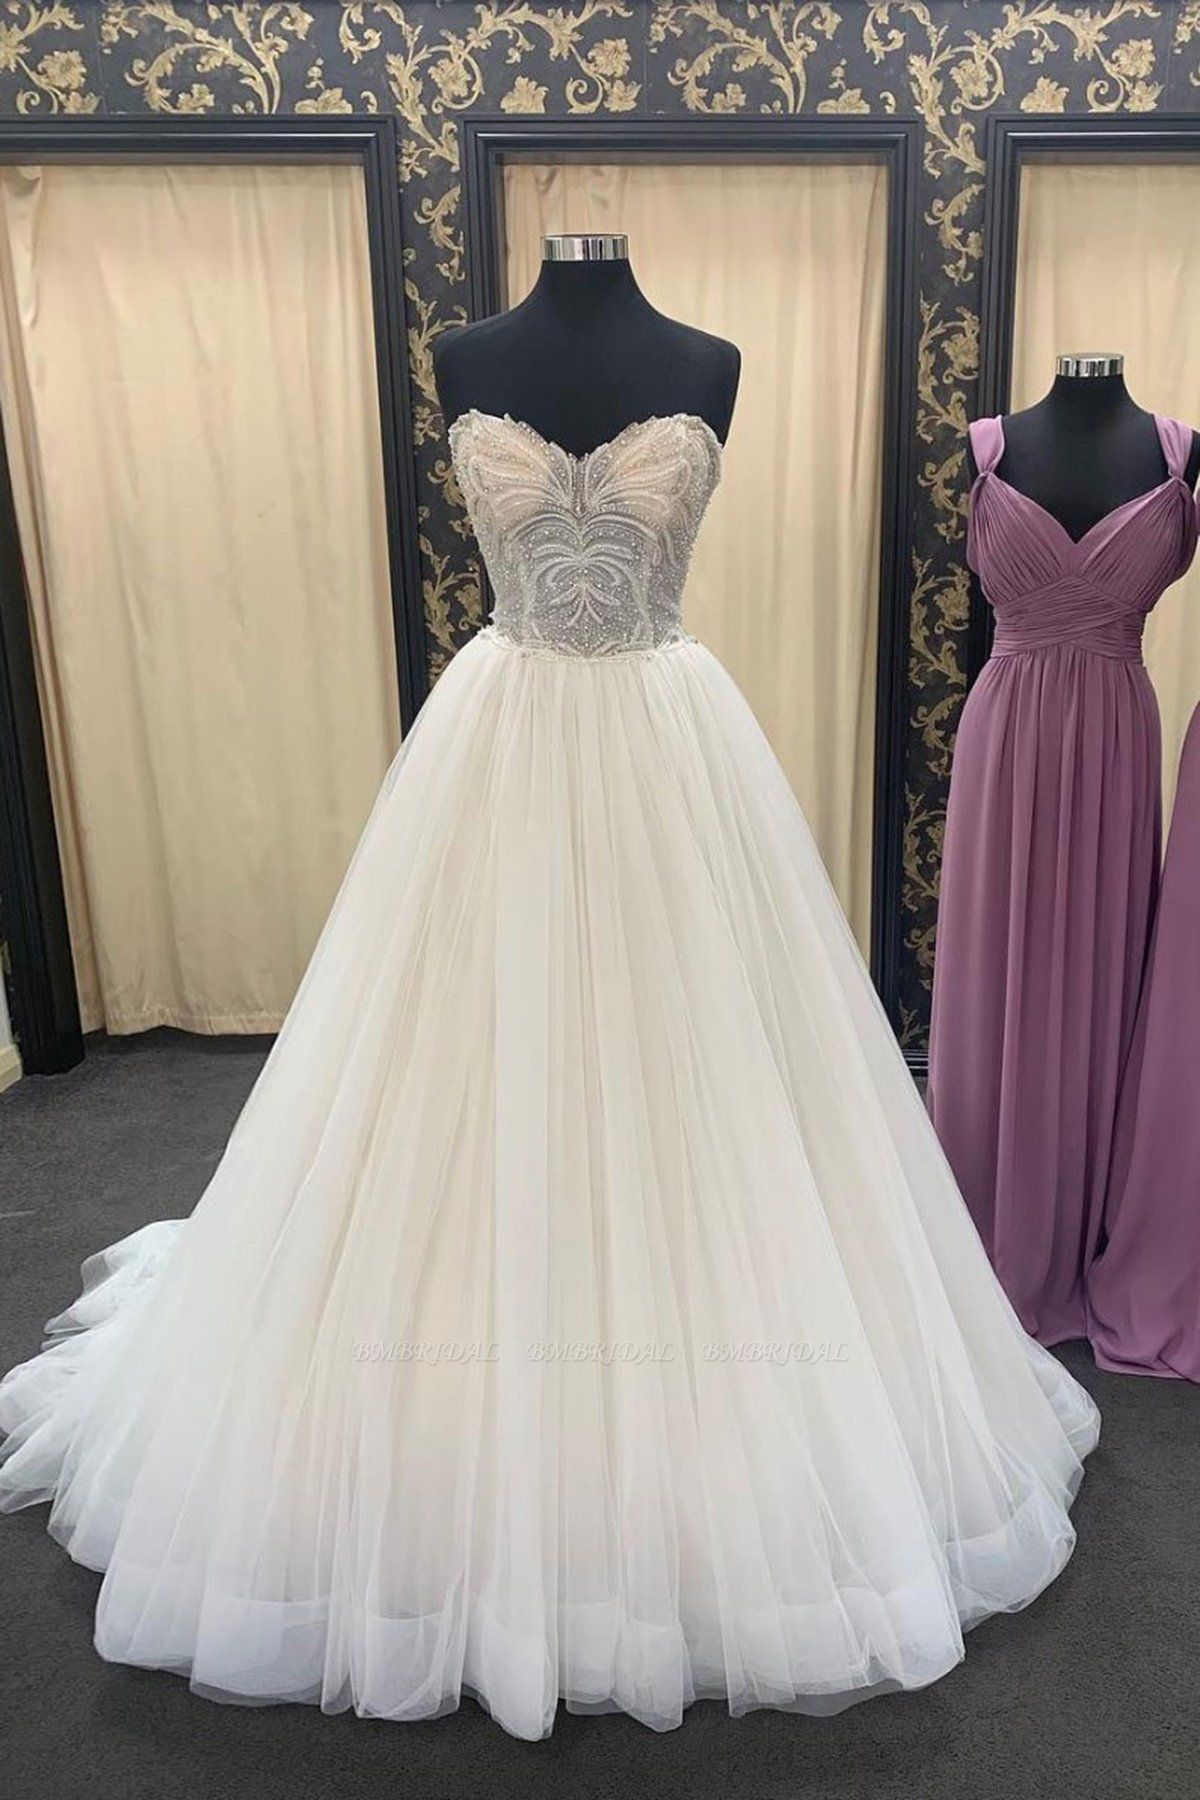 BMbridal Chic Ivory Sweetheart Long Lace Up Wedding Dress Crystal Appliques Bridal Gowns On Sale